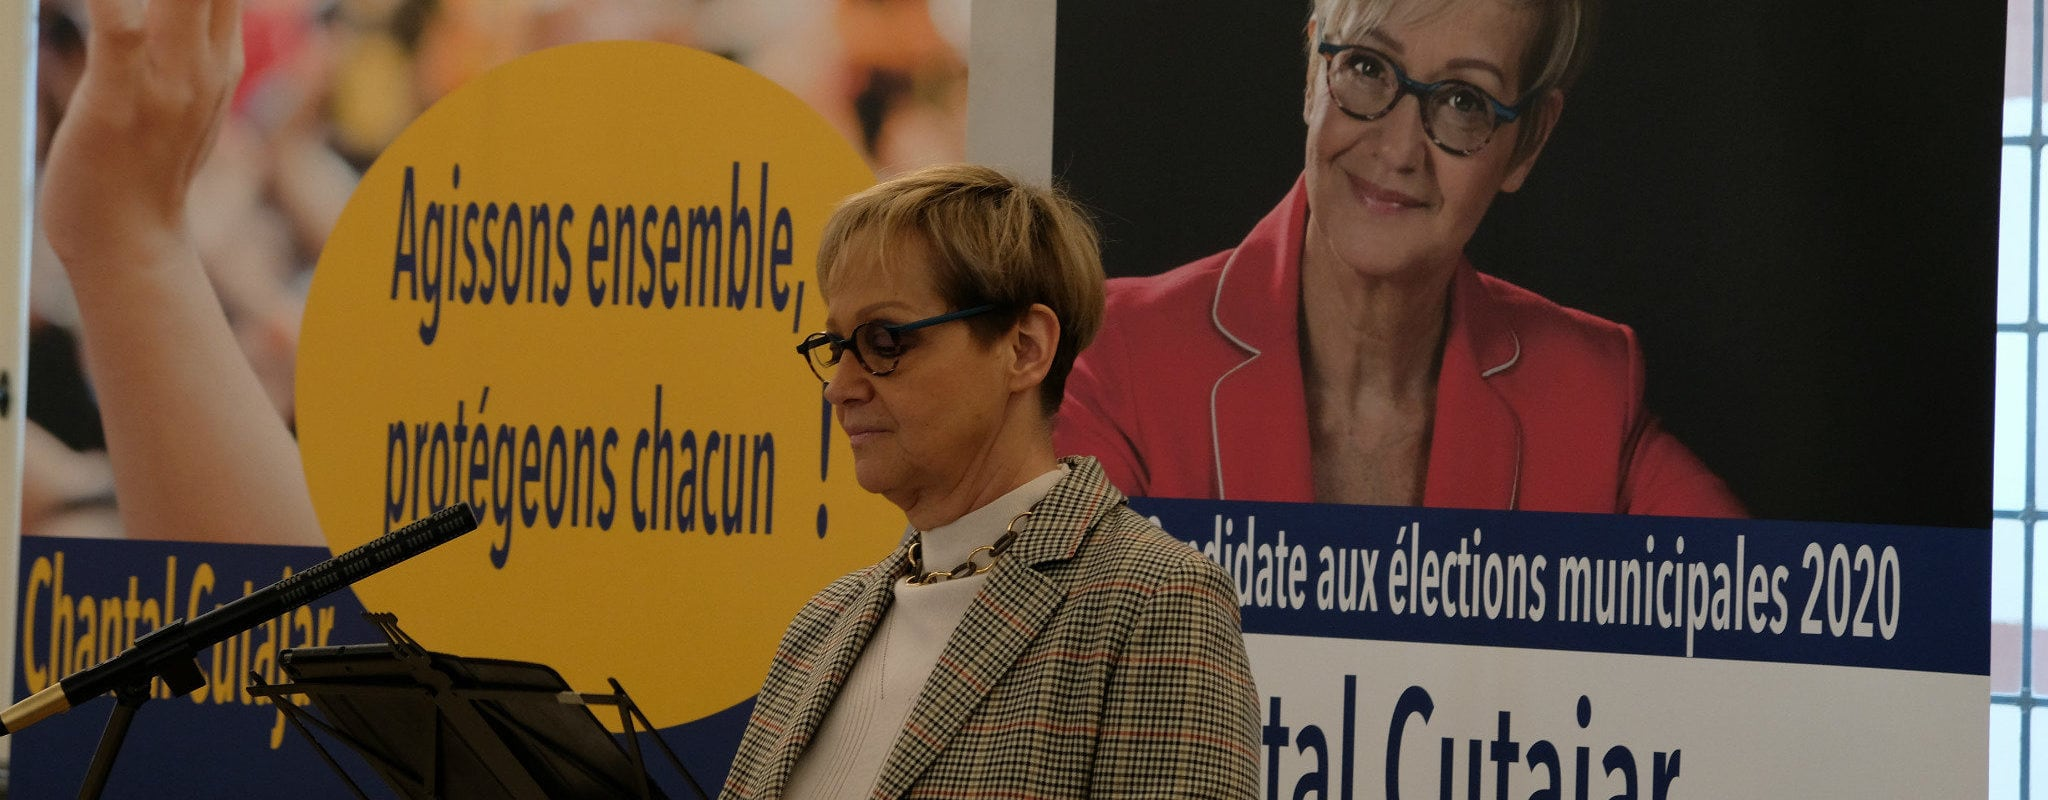 Chantal Cutajar officialise sa candidature aux municipales